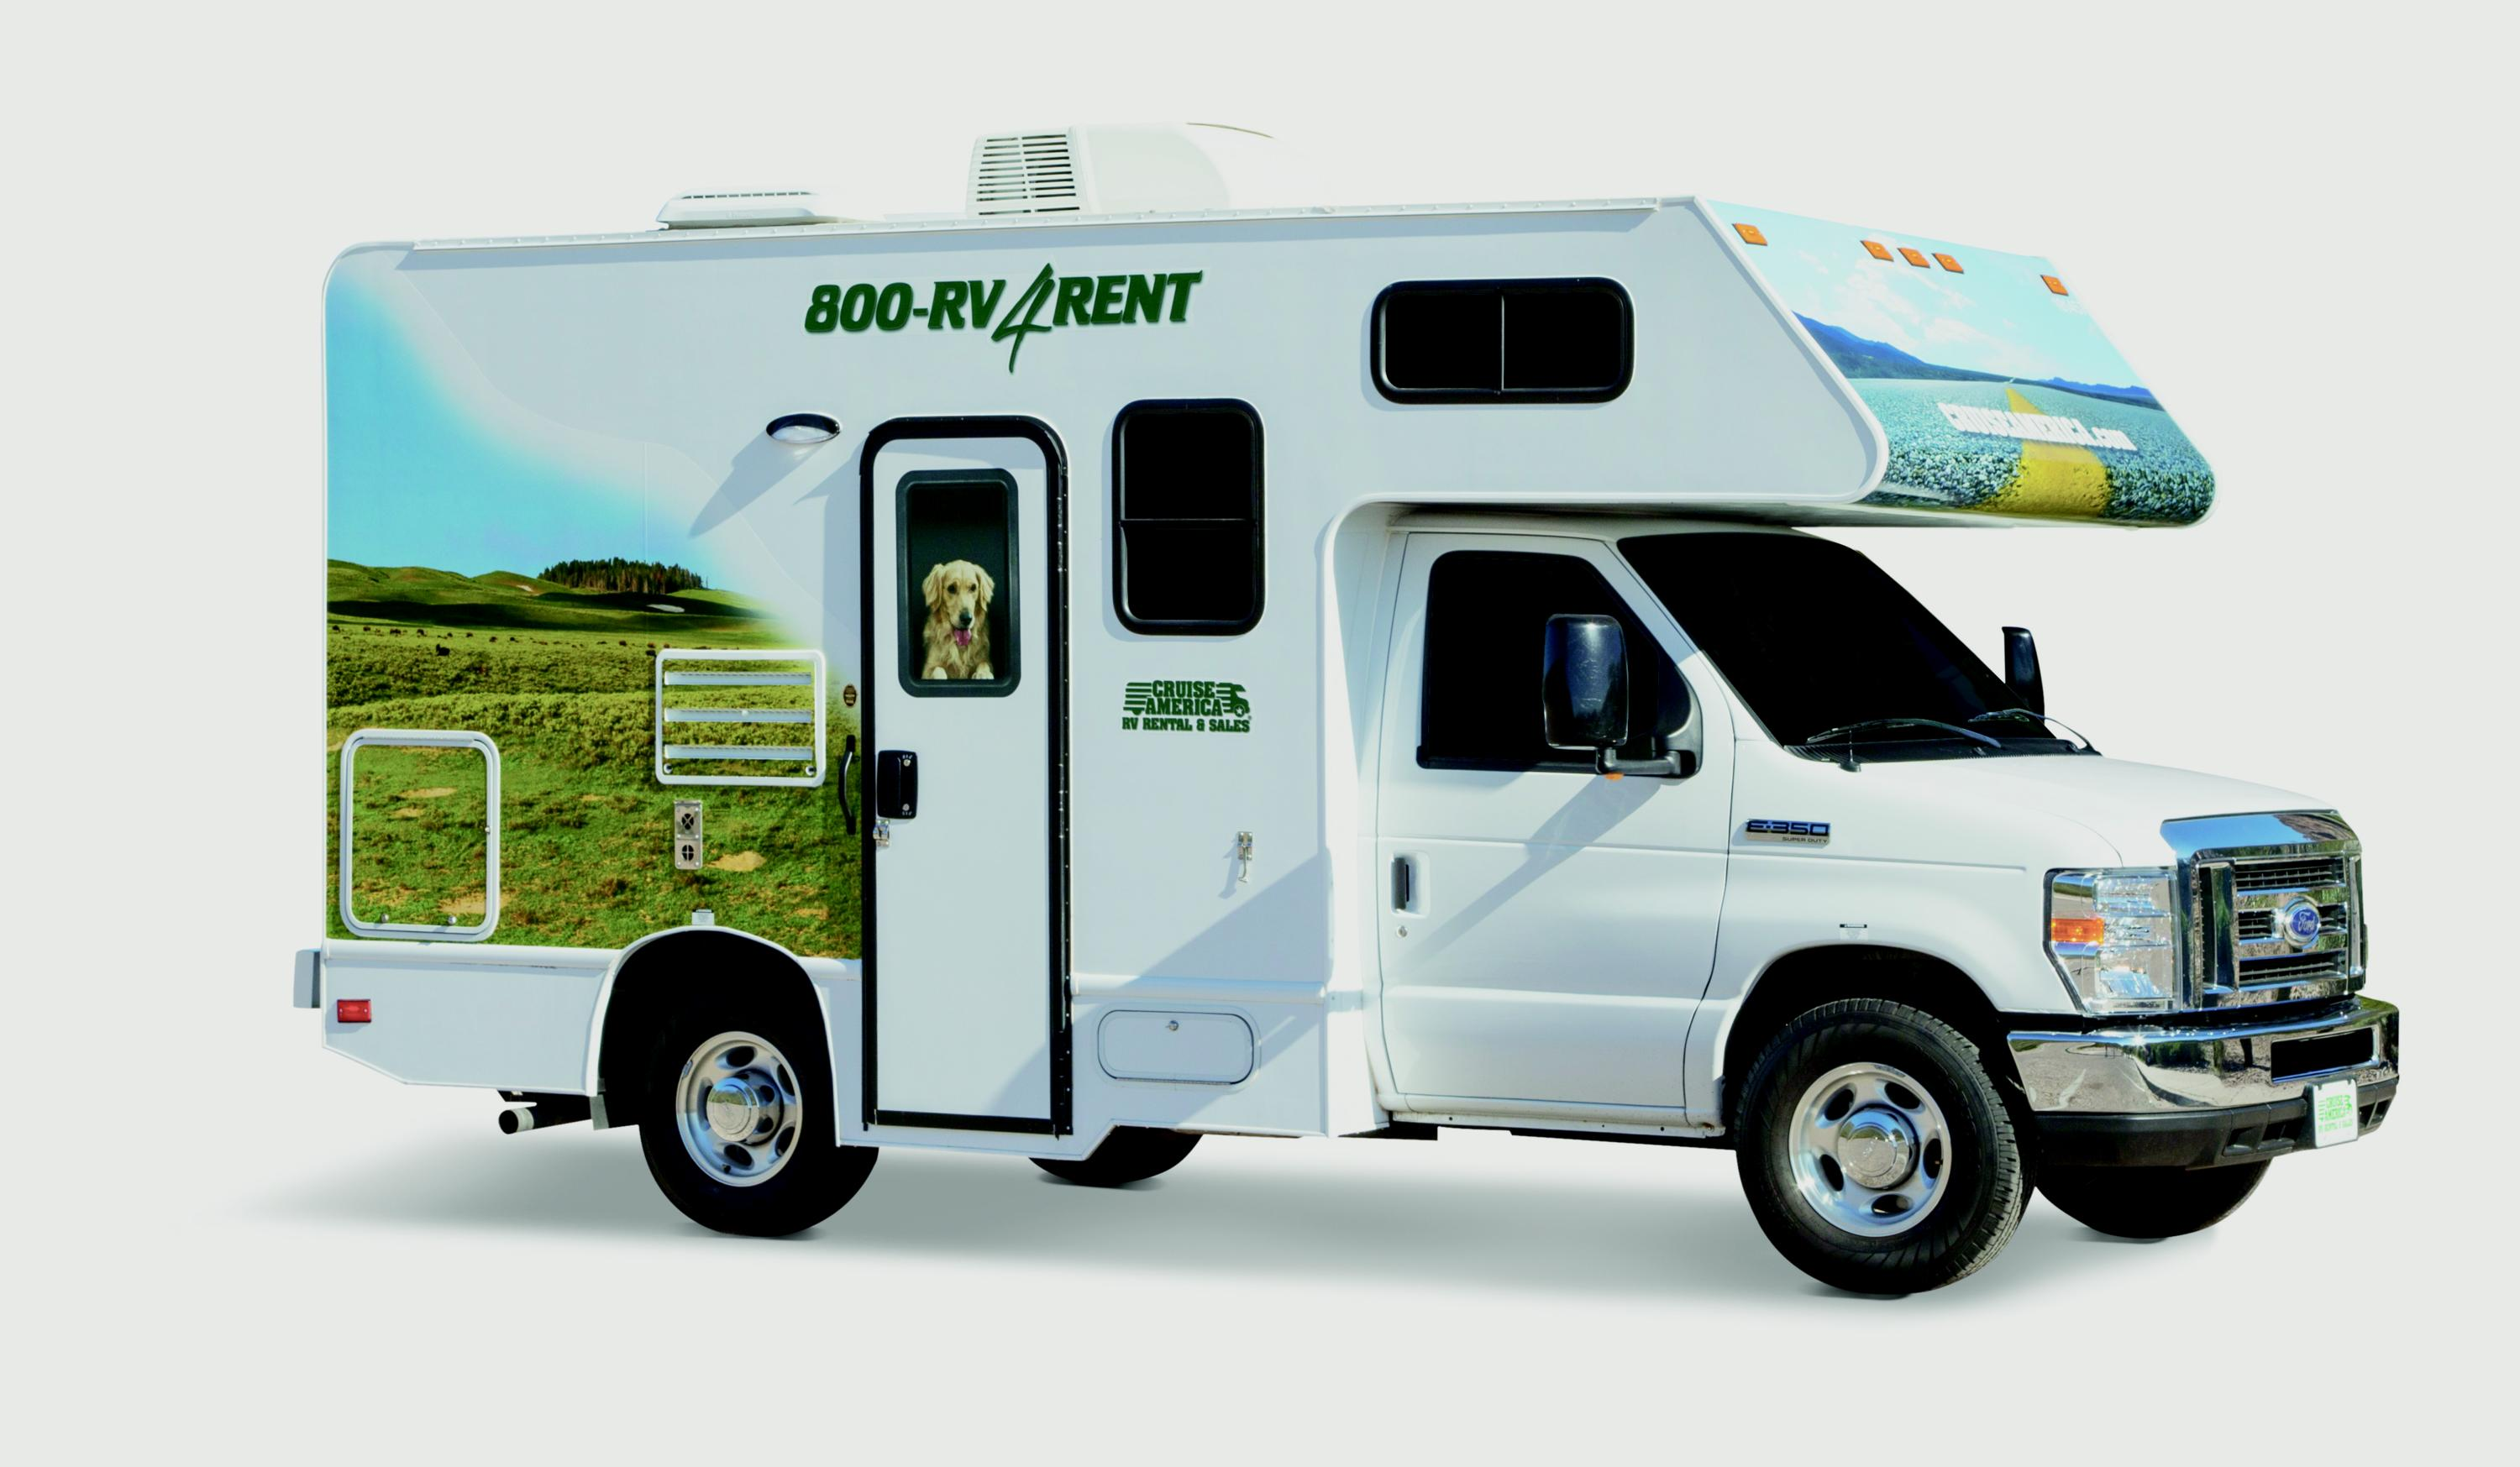 Campervan Hire, Great offers on motorhome hire | Auto Europe